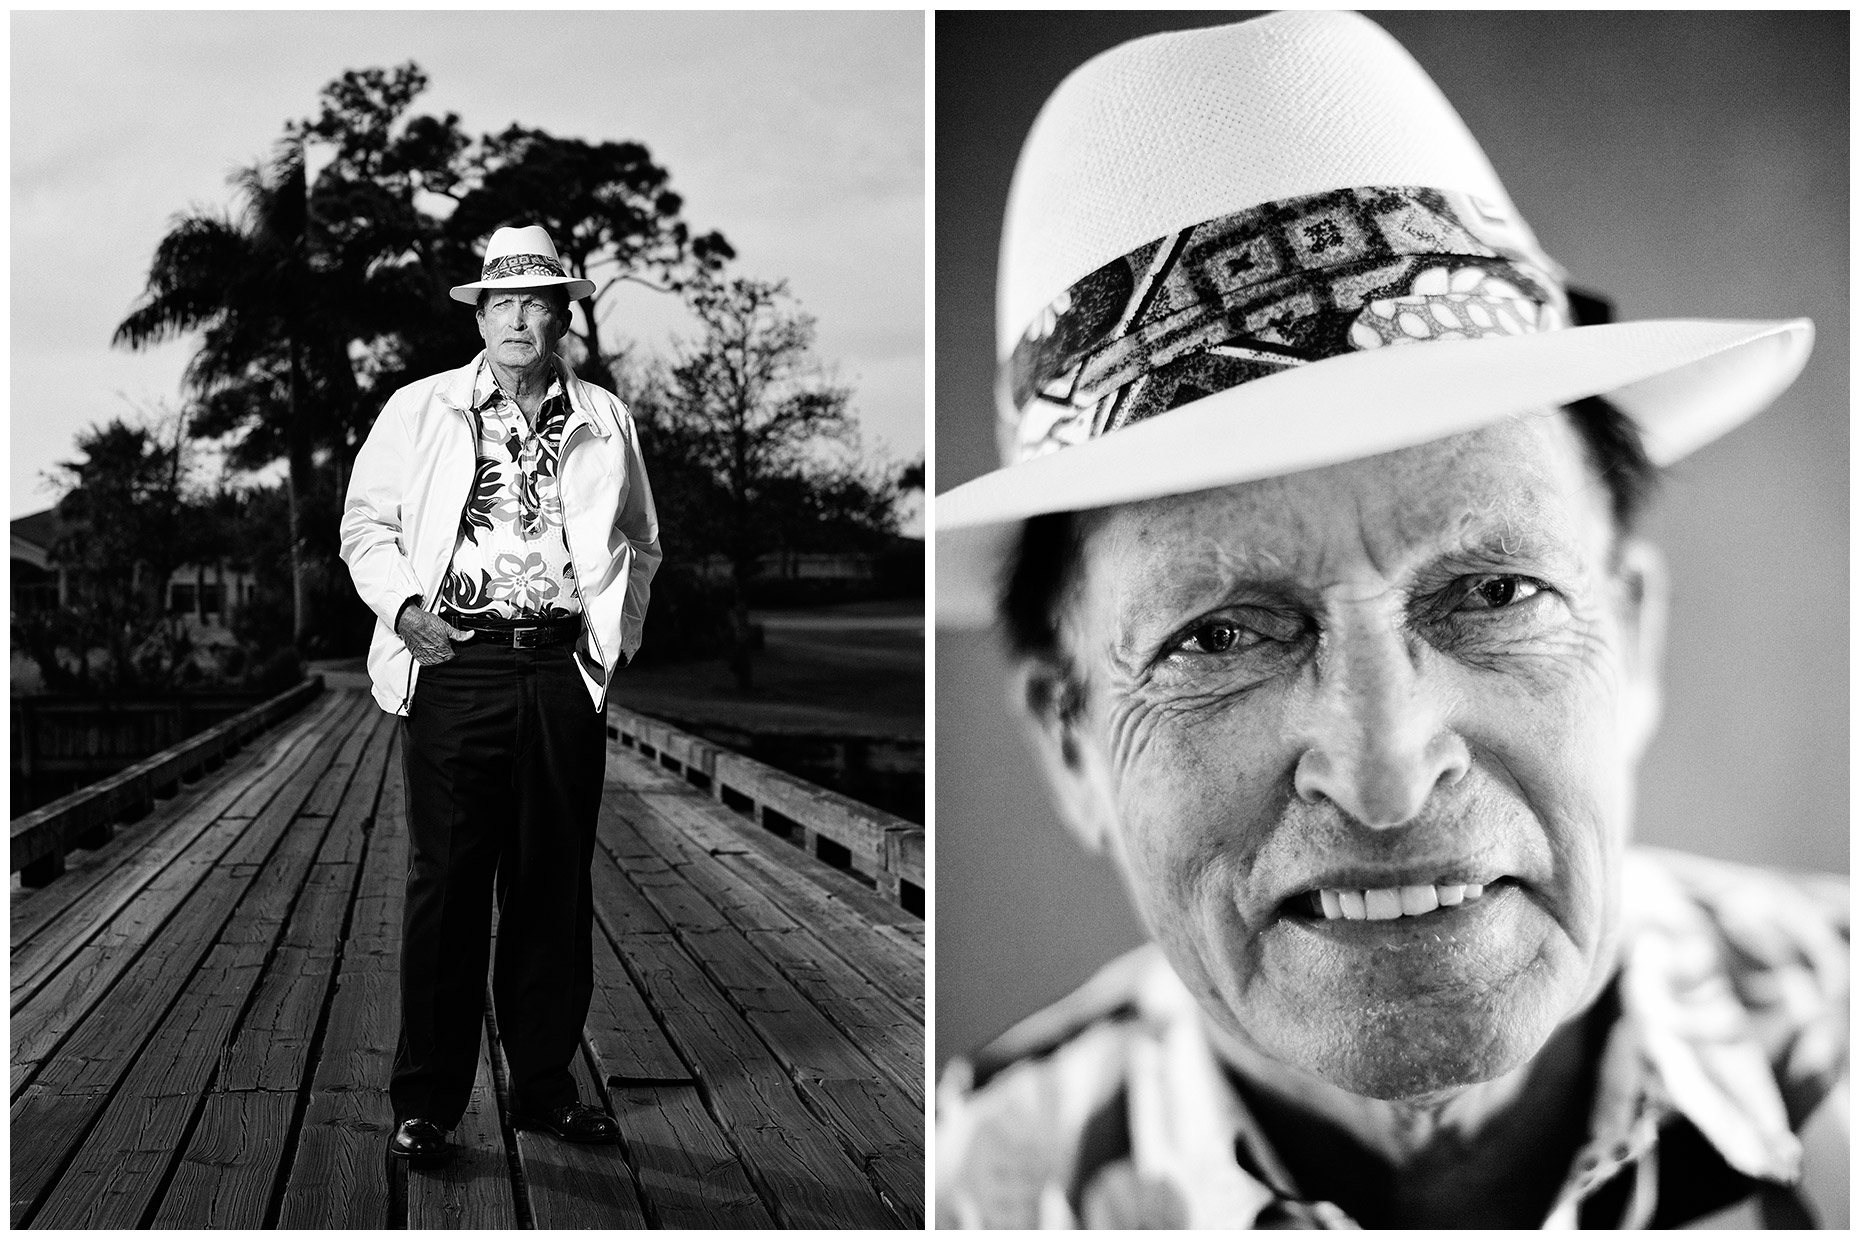 Chi-Chi Rodriguez, photographed for Golf World magazine.